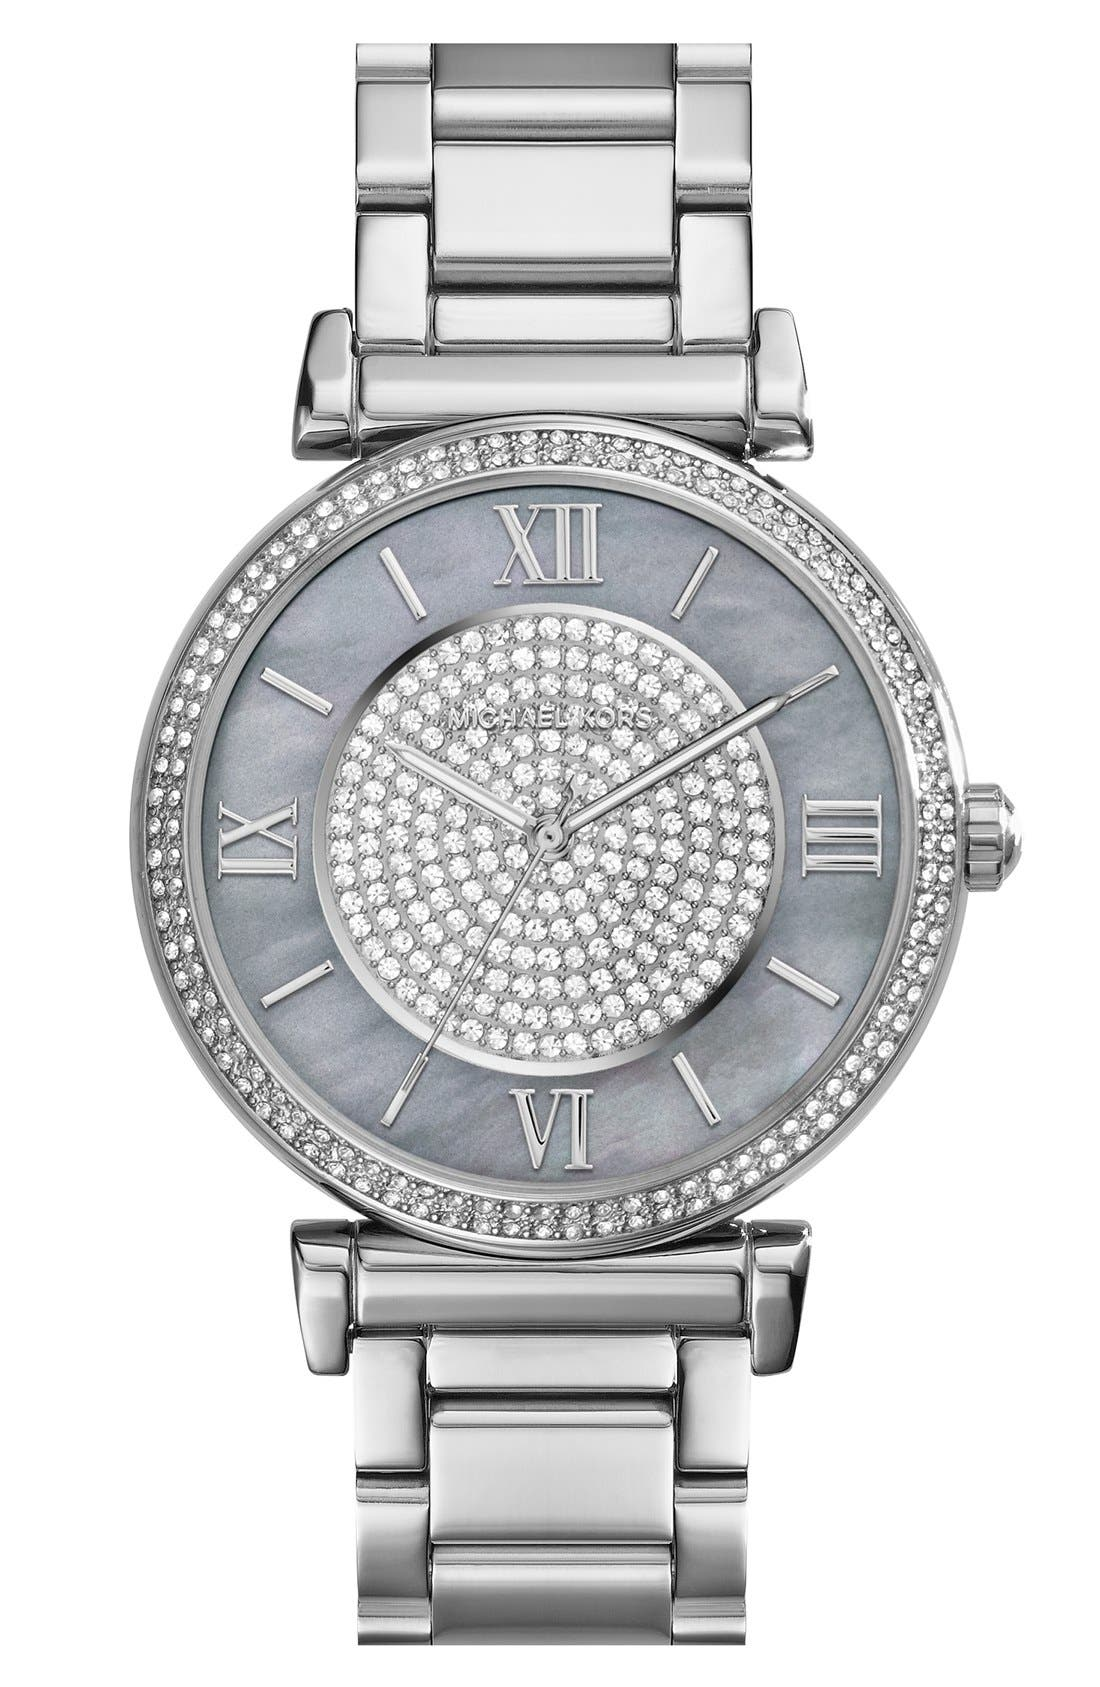 Main Image - Michael Kors 'Caitlin' Crystal Dial Bracelet Watch, 38mm